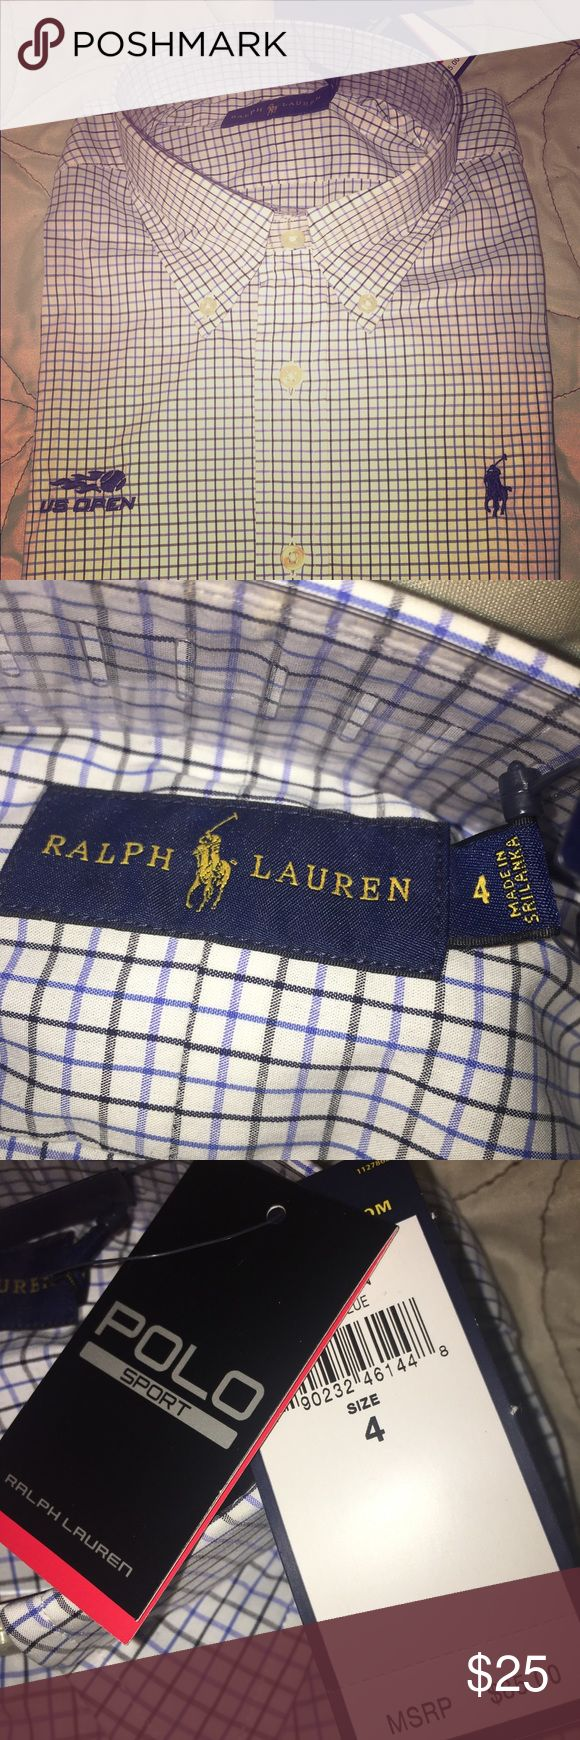 RALPH LAUREN POLO SHIRT BRAND NEW NEVER WORN❗️2016 US OPEN RALPH LAURN POLO SHIRT❗️WOMENS SIZE 4❗️THIS IS A SHORT SLEVE SHIRT ❗️ ONLY ONE POLO SHIRT 👚 LEFT‼️ Polo by Ralph Lauren Tops Button Down Shirts